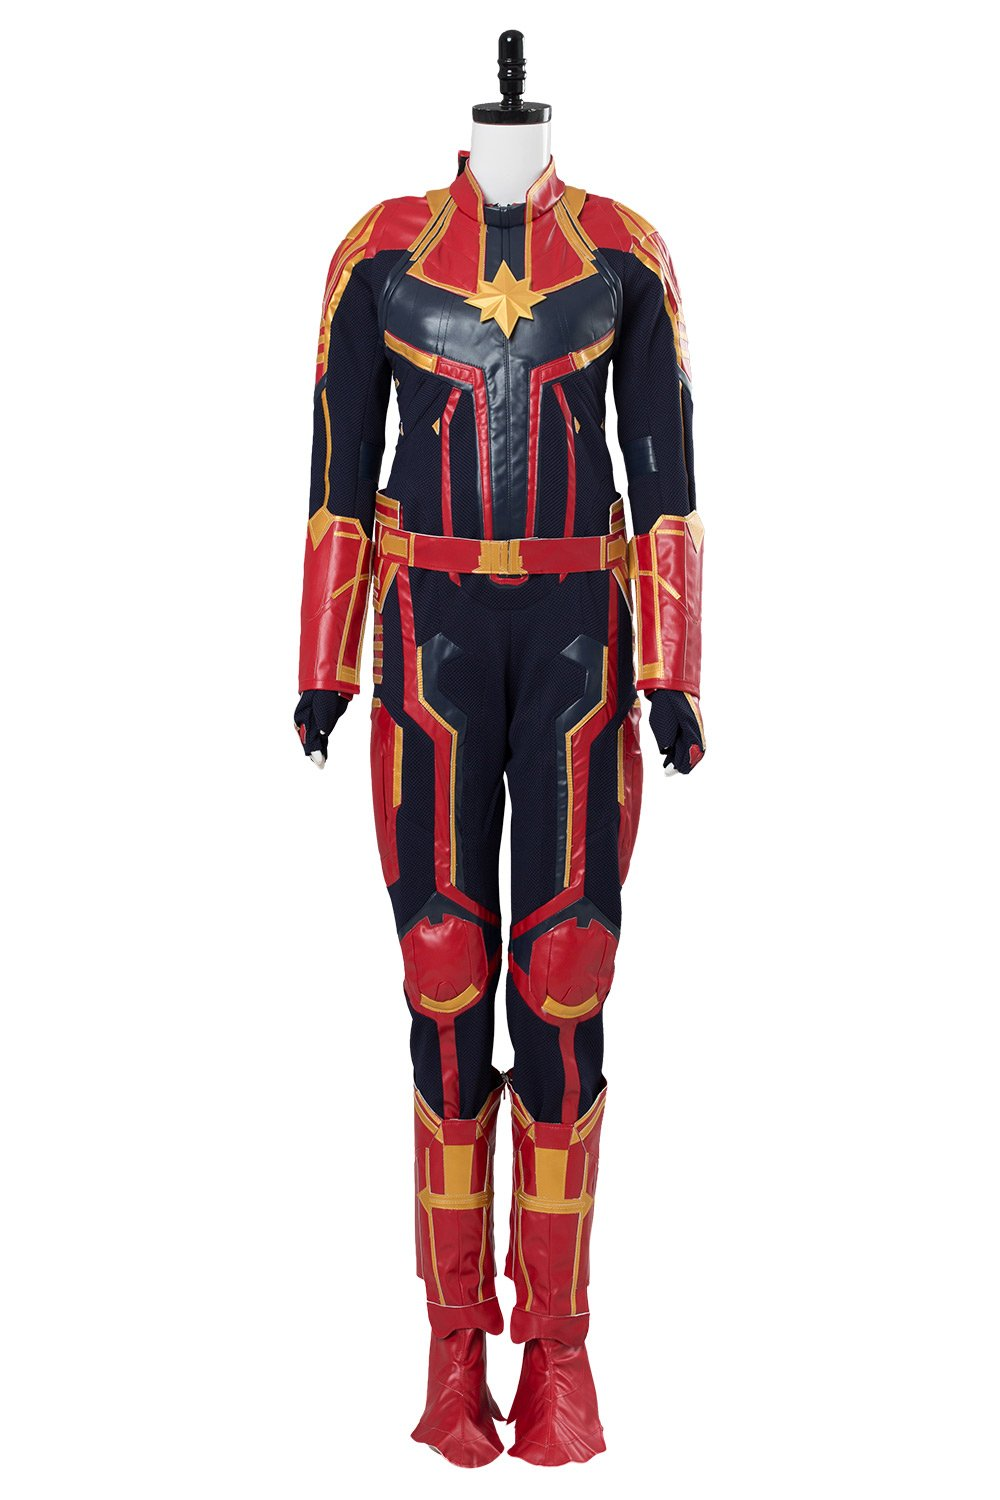 Avengers 4 Captain Marvel Carol Danvers Jumpsuit Outfit Female Super Hero Costume